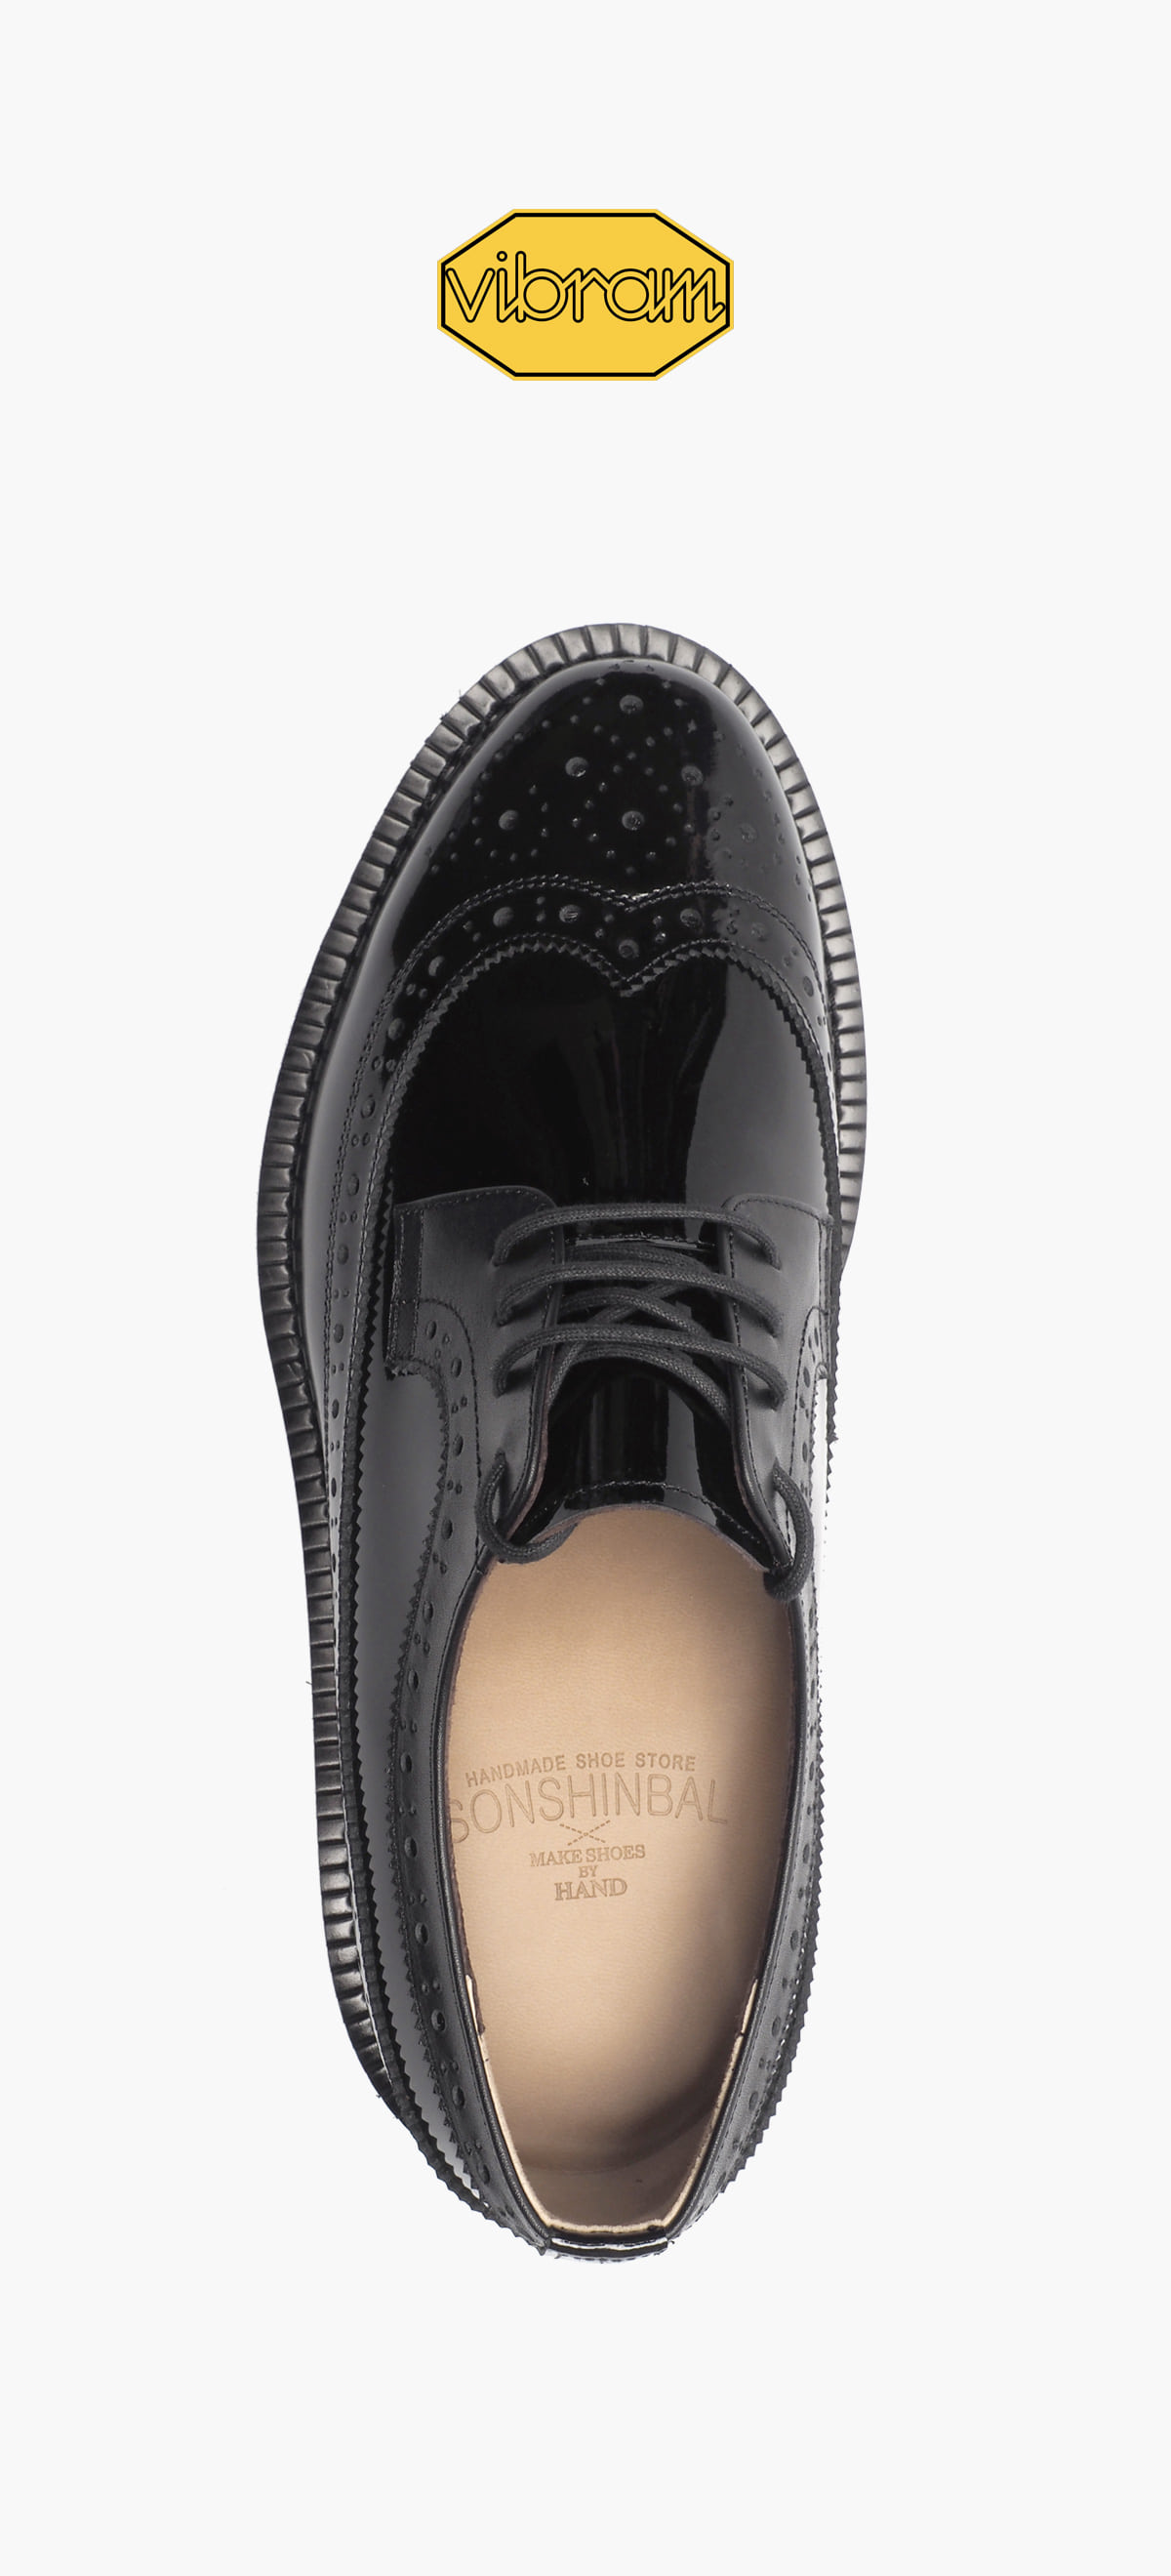 Wing Tip 0027-99 Black Combination